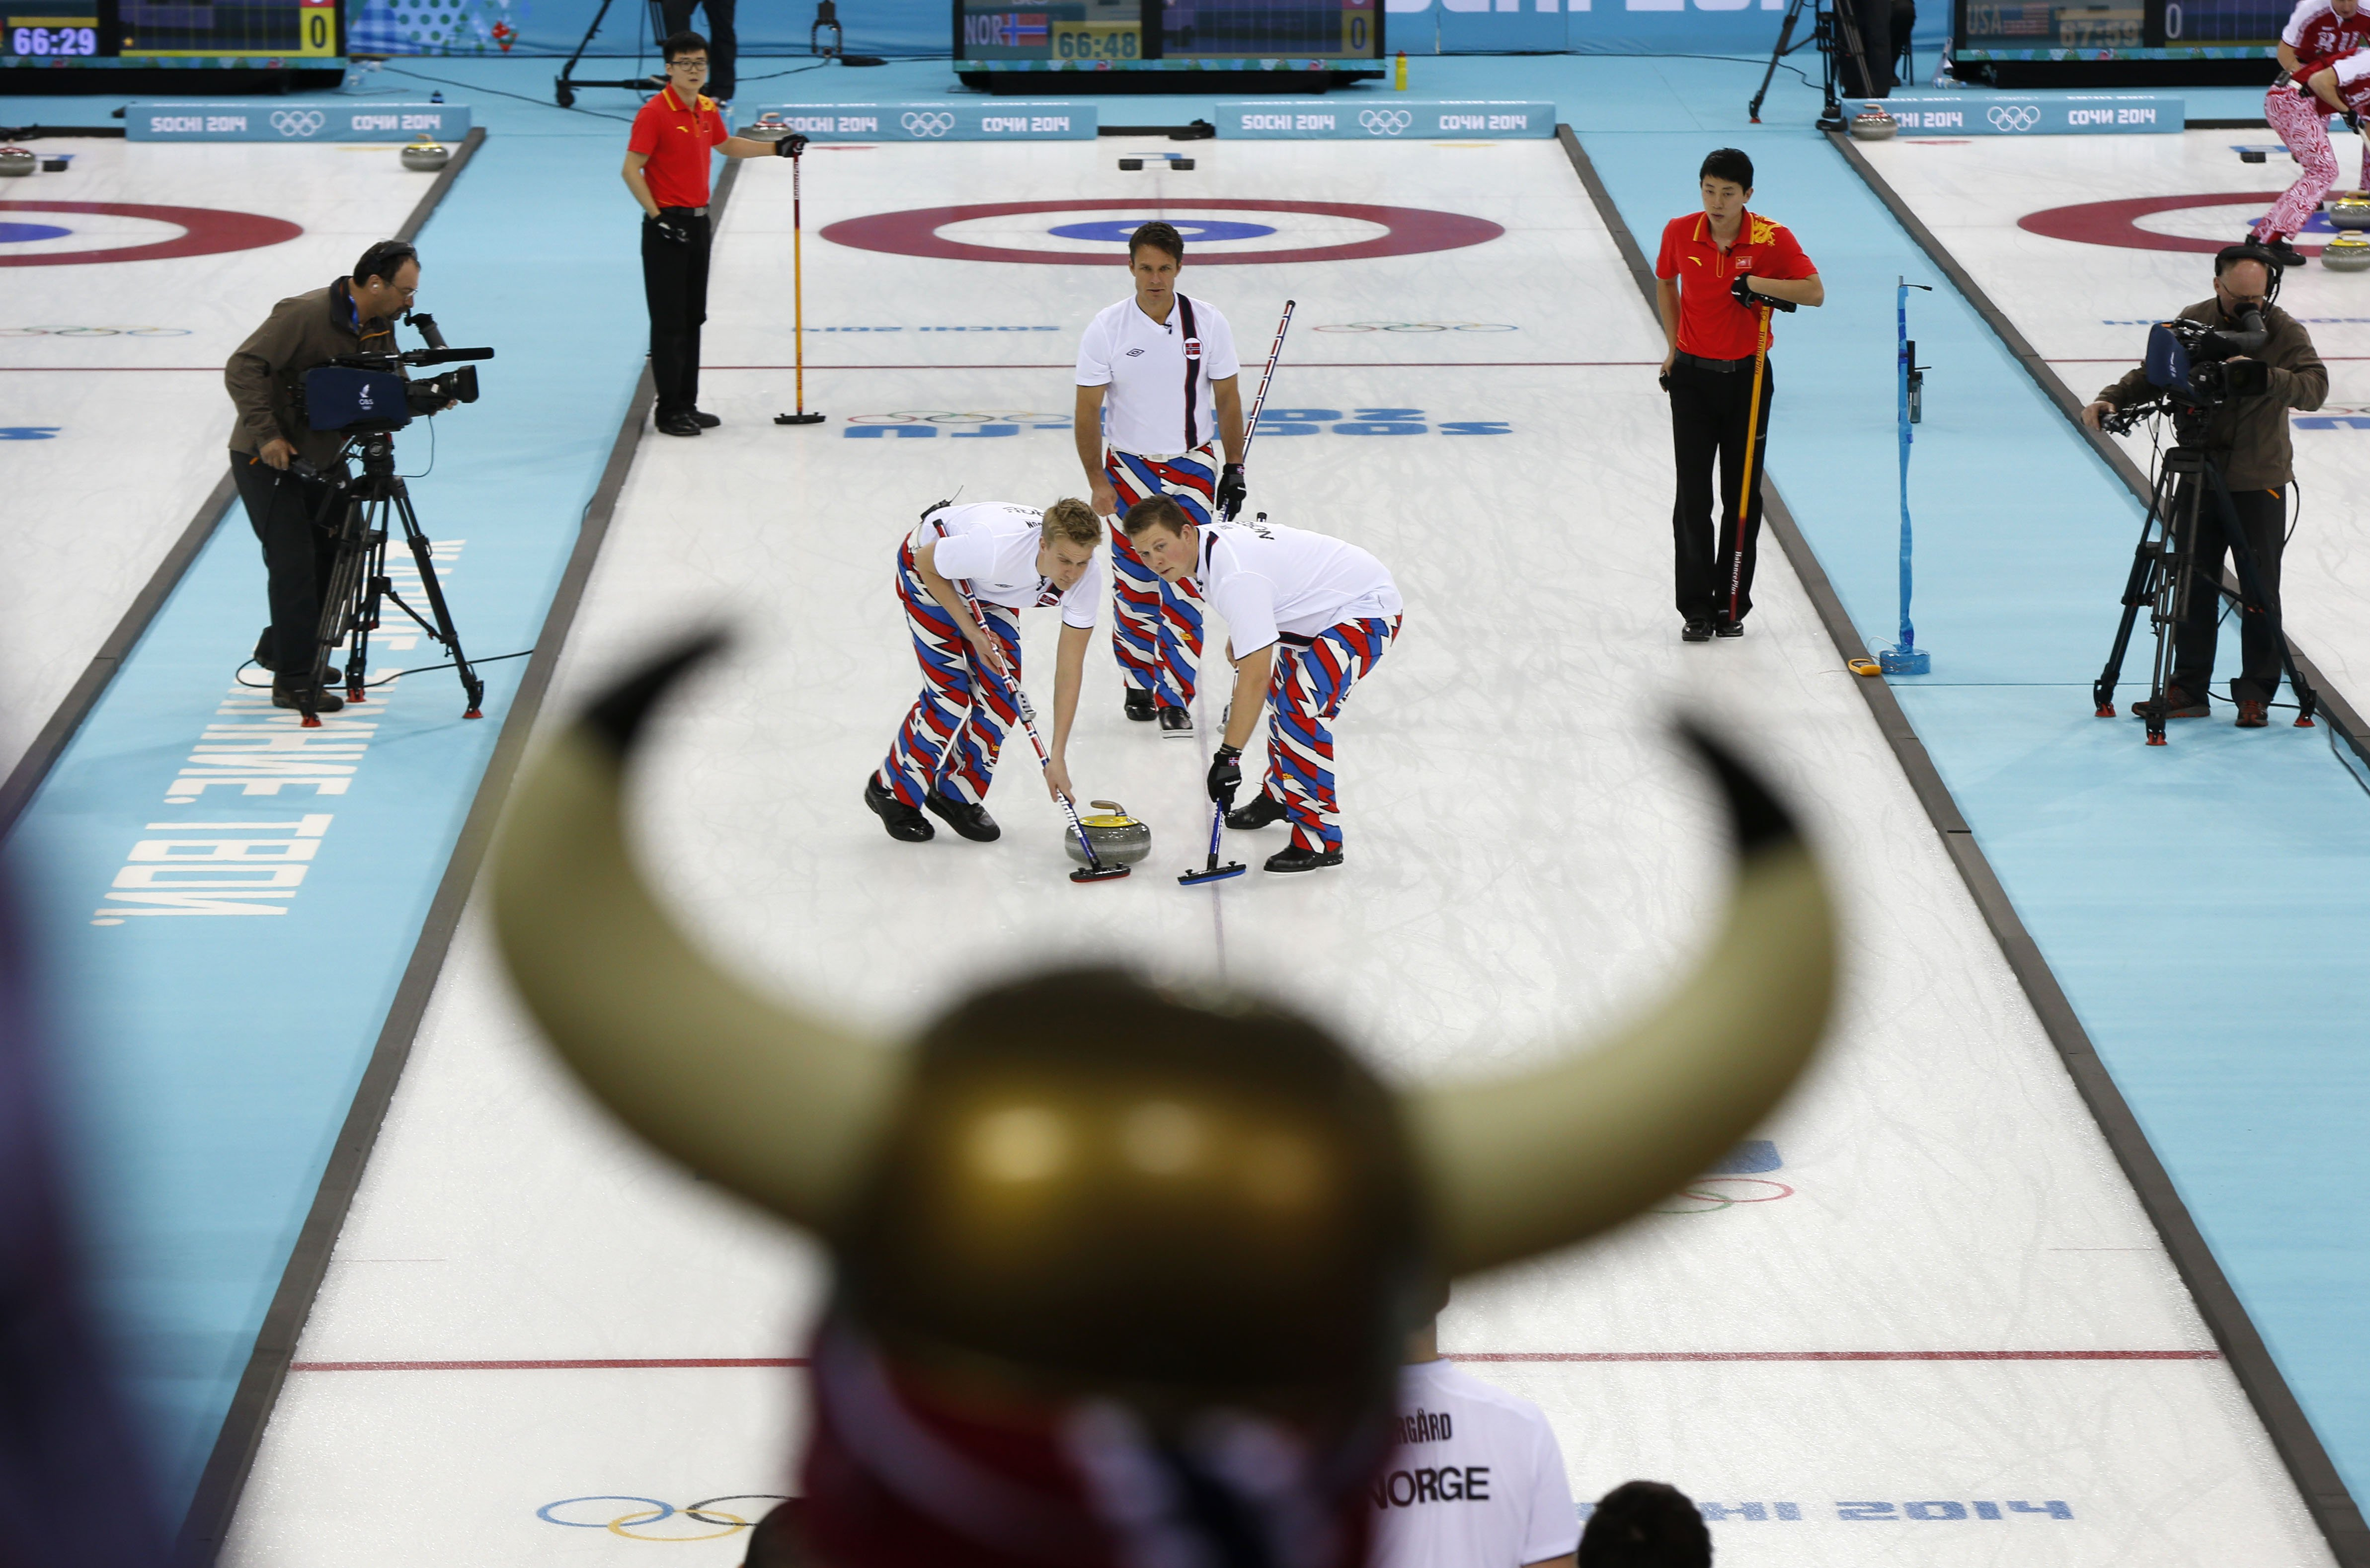 Norwegian curling fan Rune Eikeland, wearing viking horns, watches his countrymen Haavard Vad Petersson, left, and Christoffer Svae sweep in front of a rock delivered by skip Thomas Ulsrud during the men's curling competition against China.